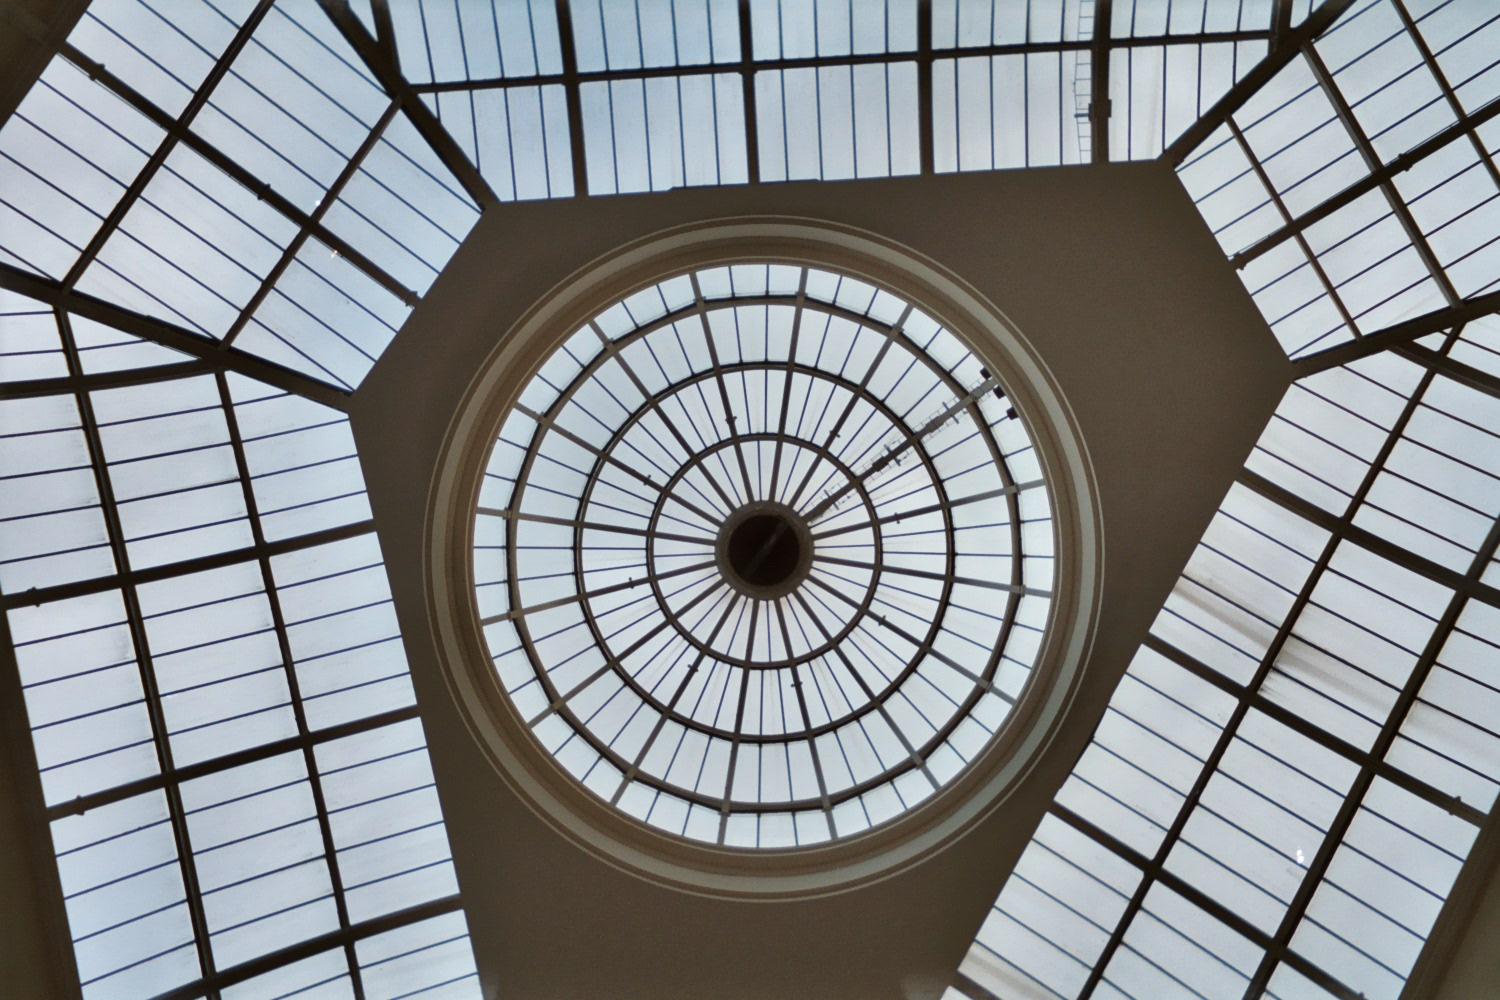 The roof of the Triangle/Corn Exchange, Manchester